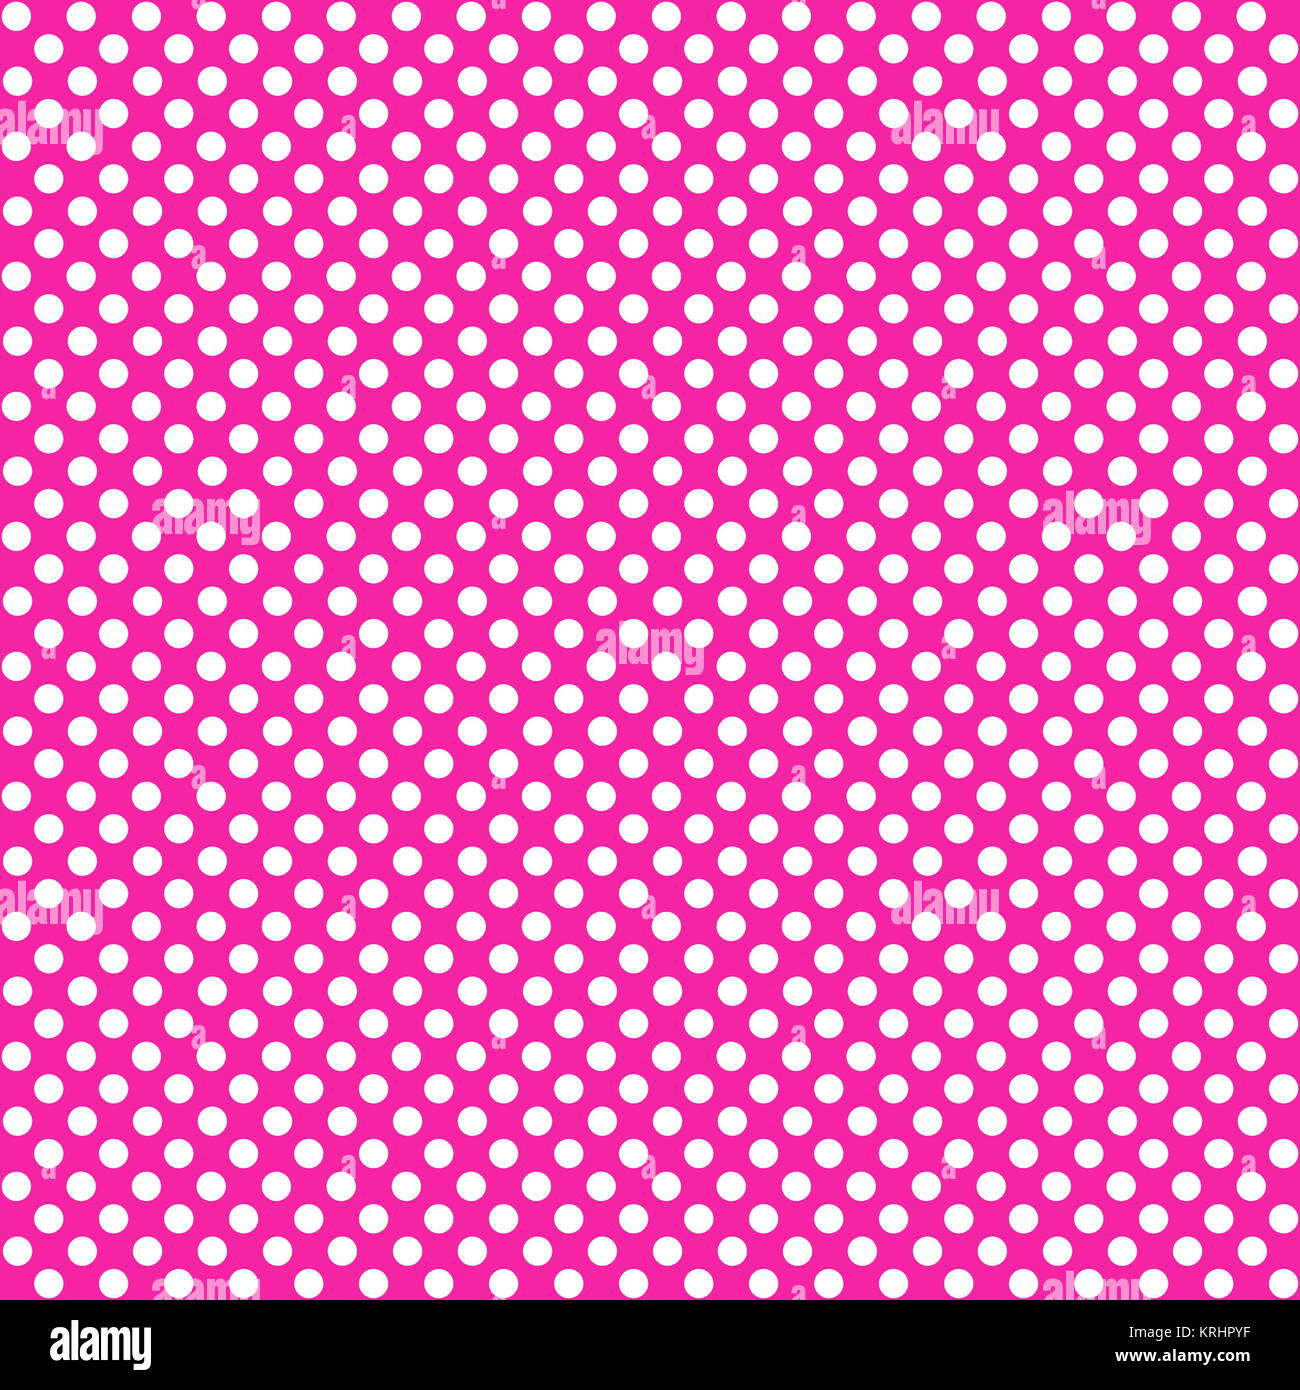 spotted background pink white - Stock Image